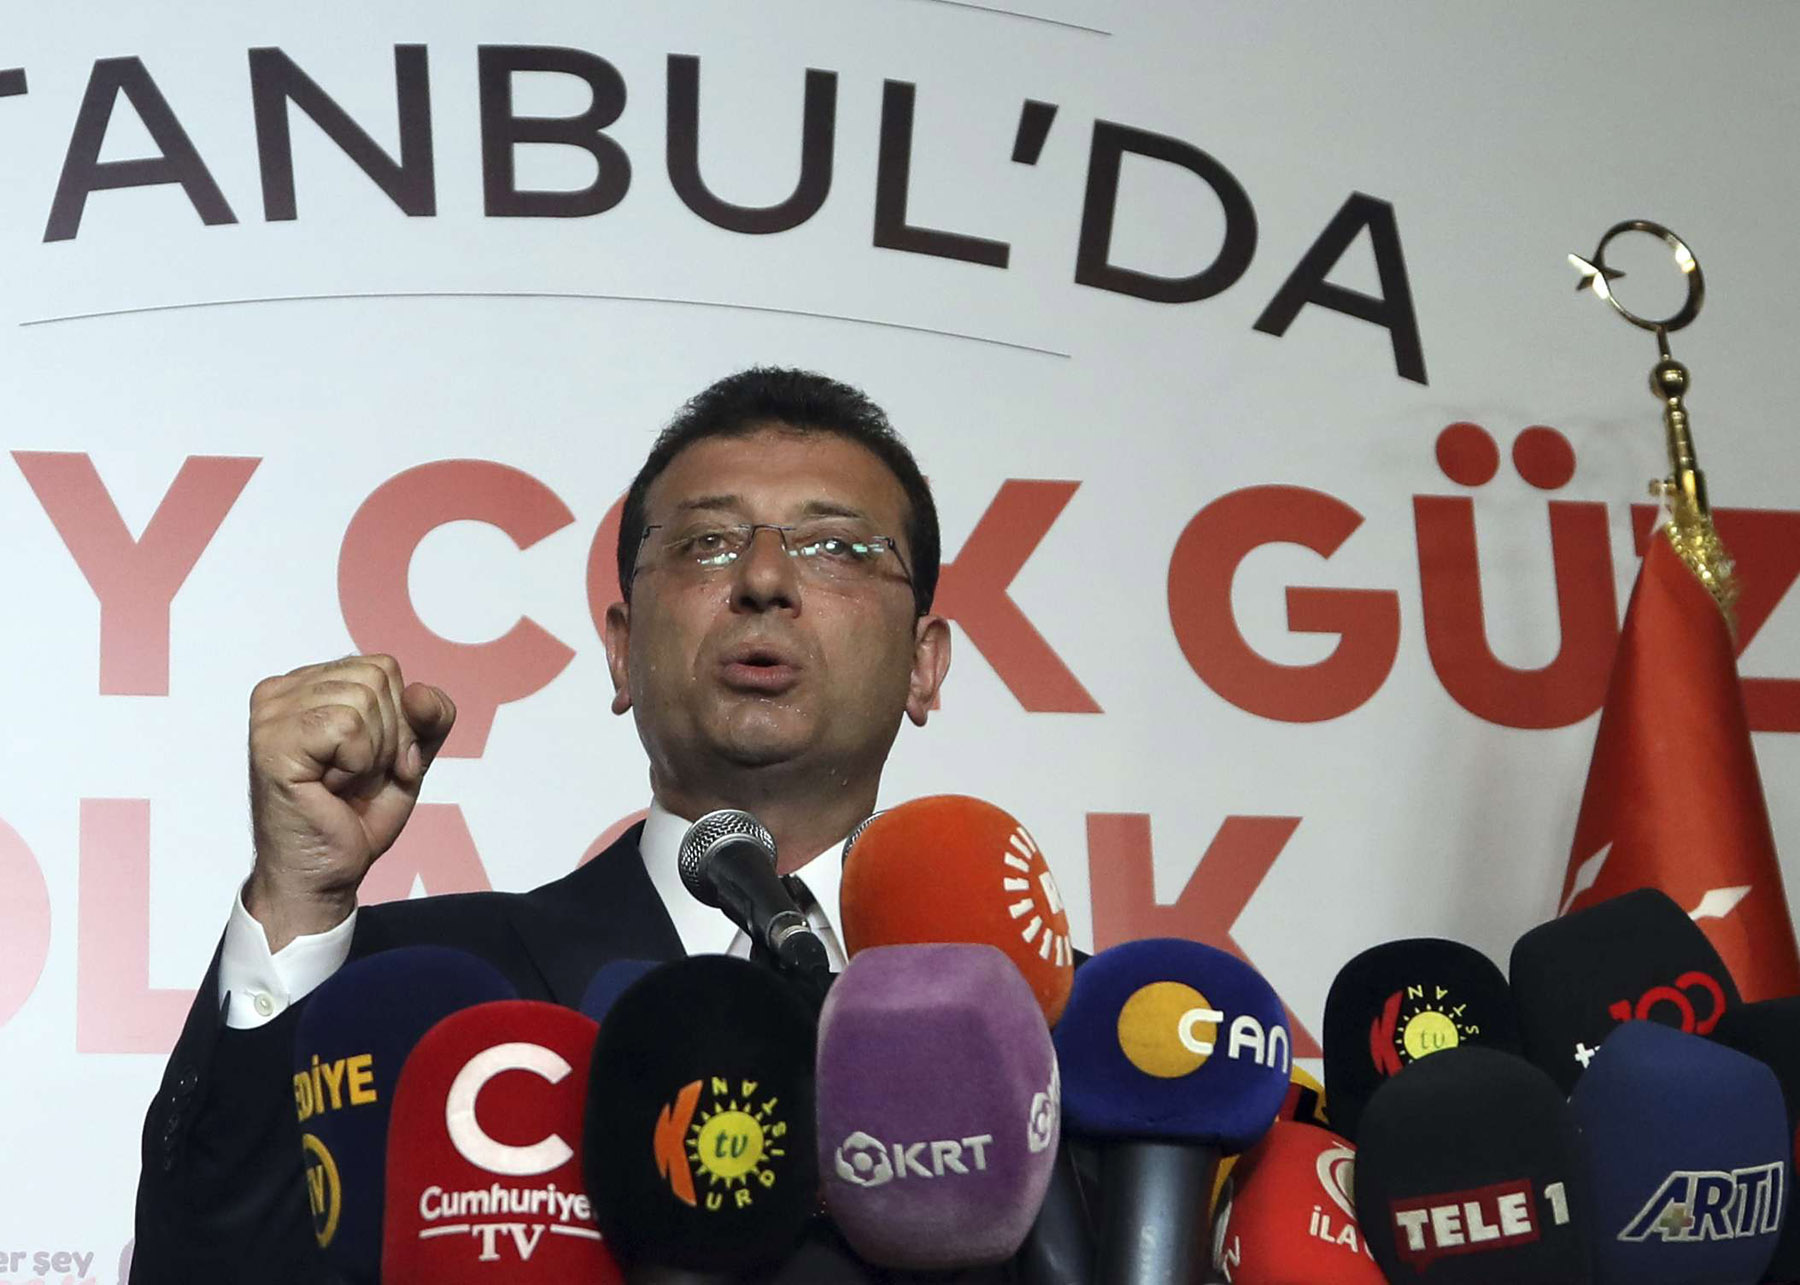 Ekrem Imamoglu, candidate of Turkey's secular opposition Republican People's Party, makes a statement after his election victory, in Istanbul, June 23, 2019. (AP)